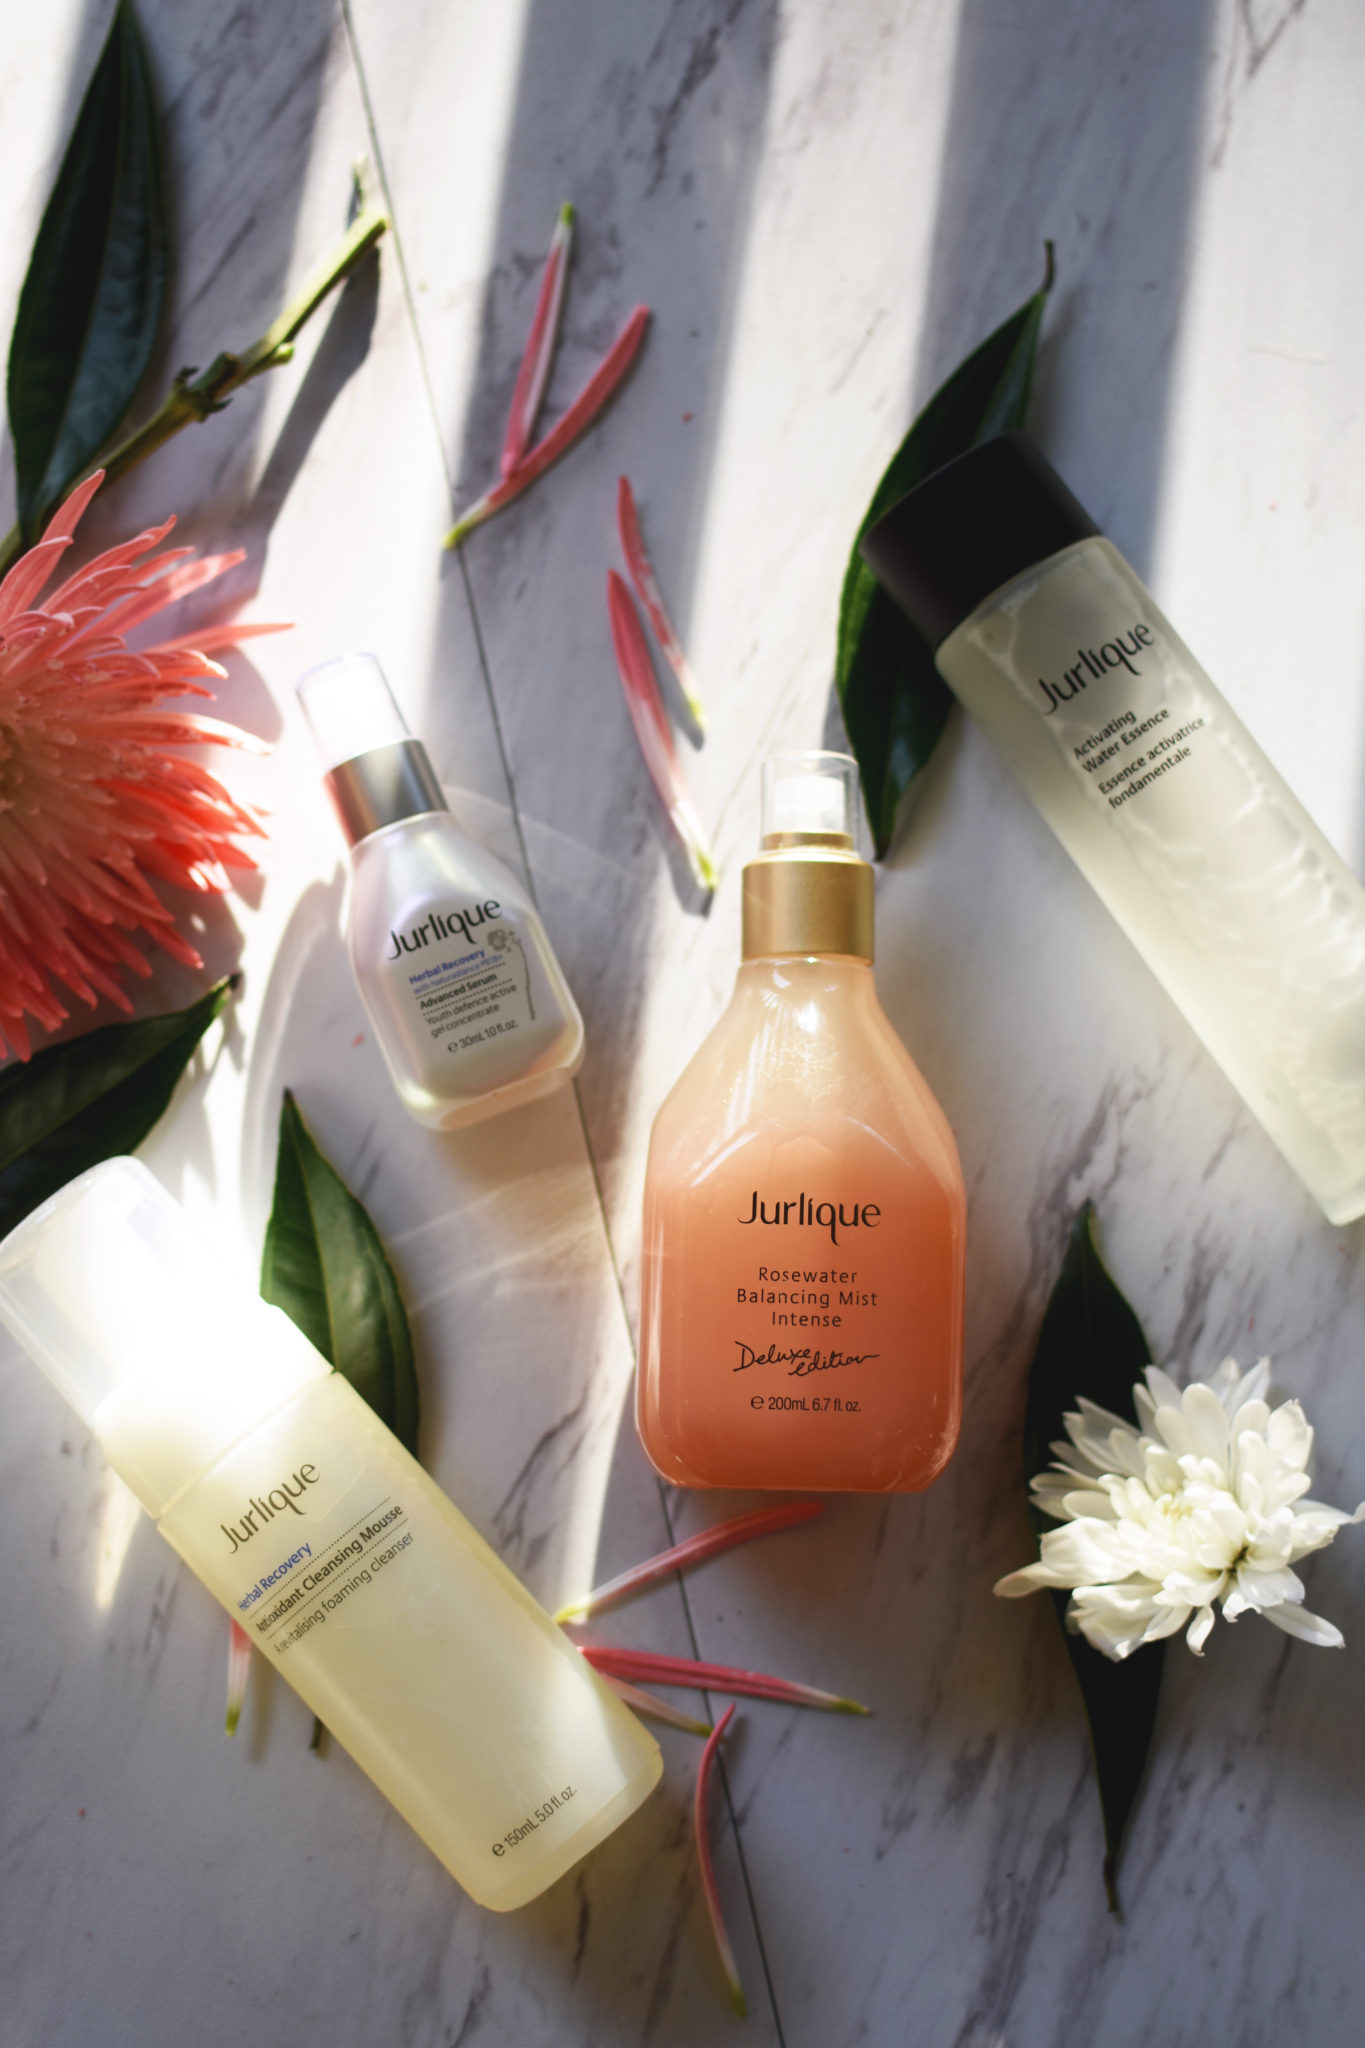 Jurlique Herbal Recovery mousse, Rosewater mist, Herbal Recovery serum, and Activating water essence.